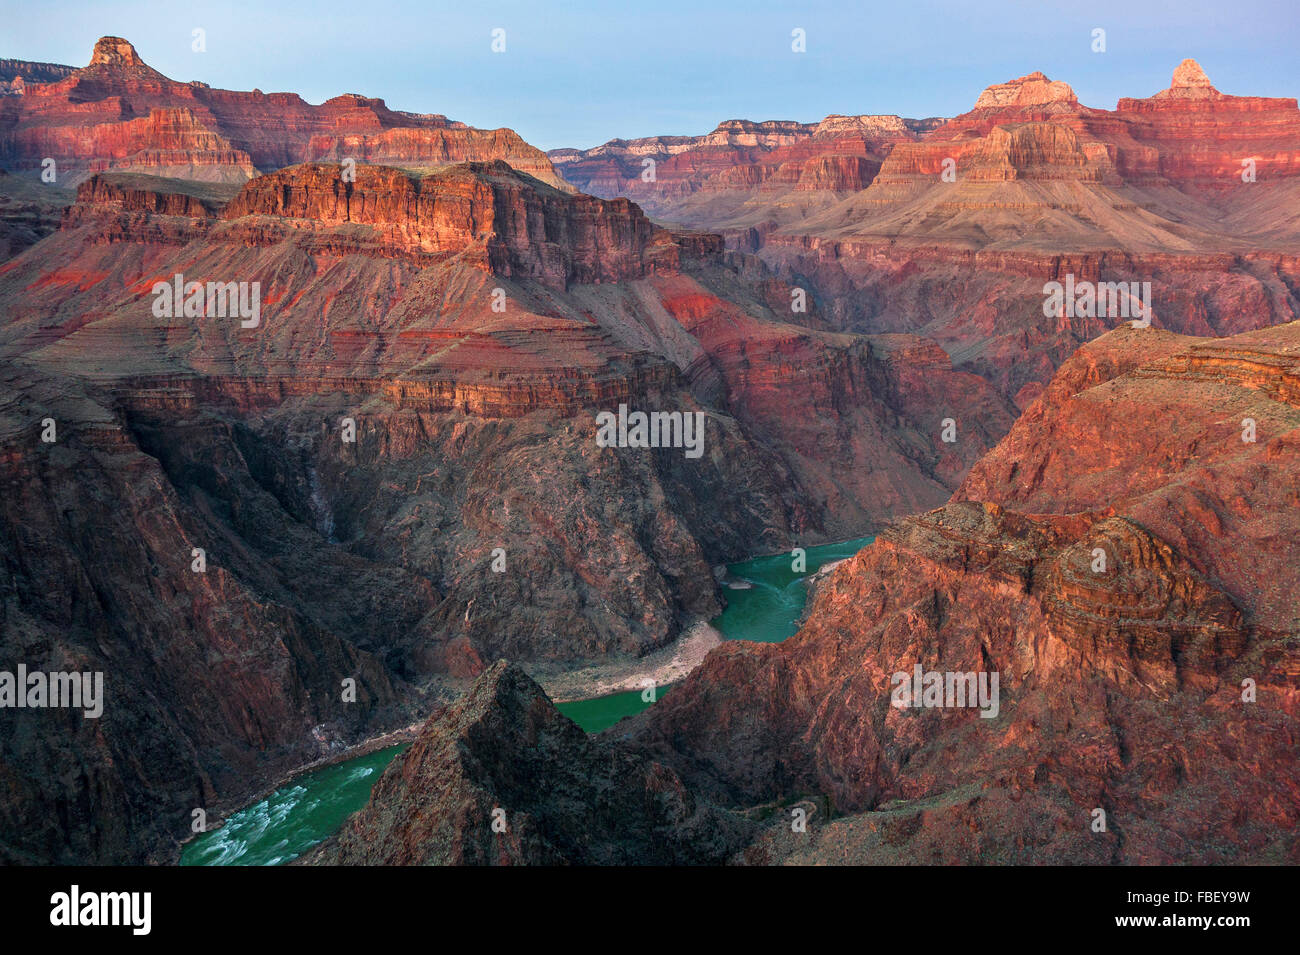 Colorado river from Tonto trail, Grand Canyon USA - Stock Image